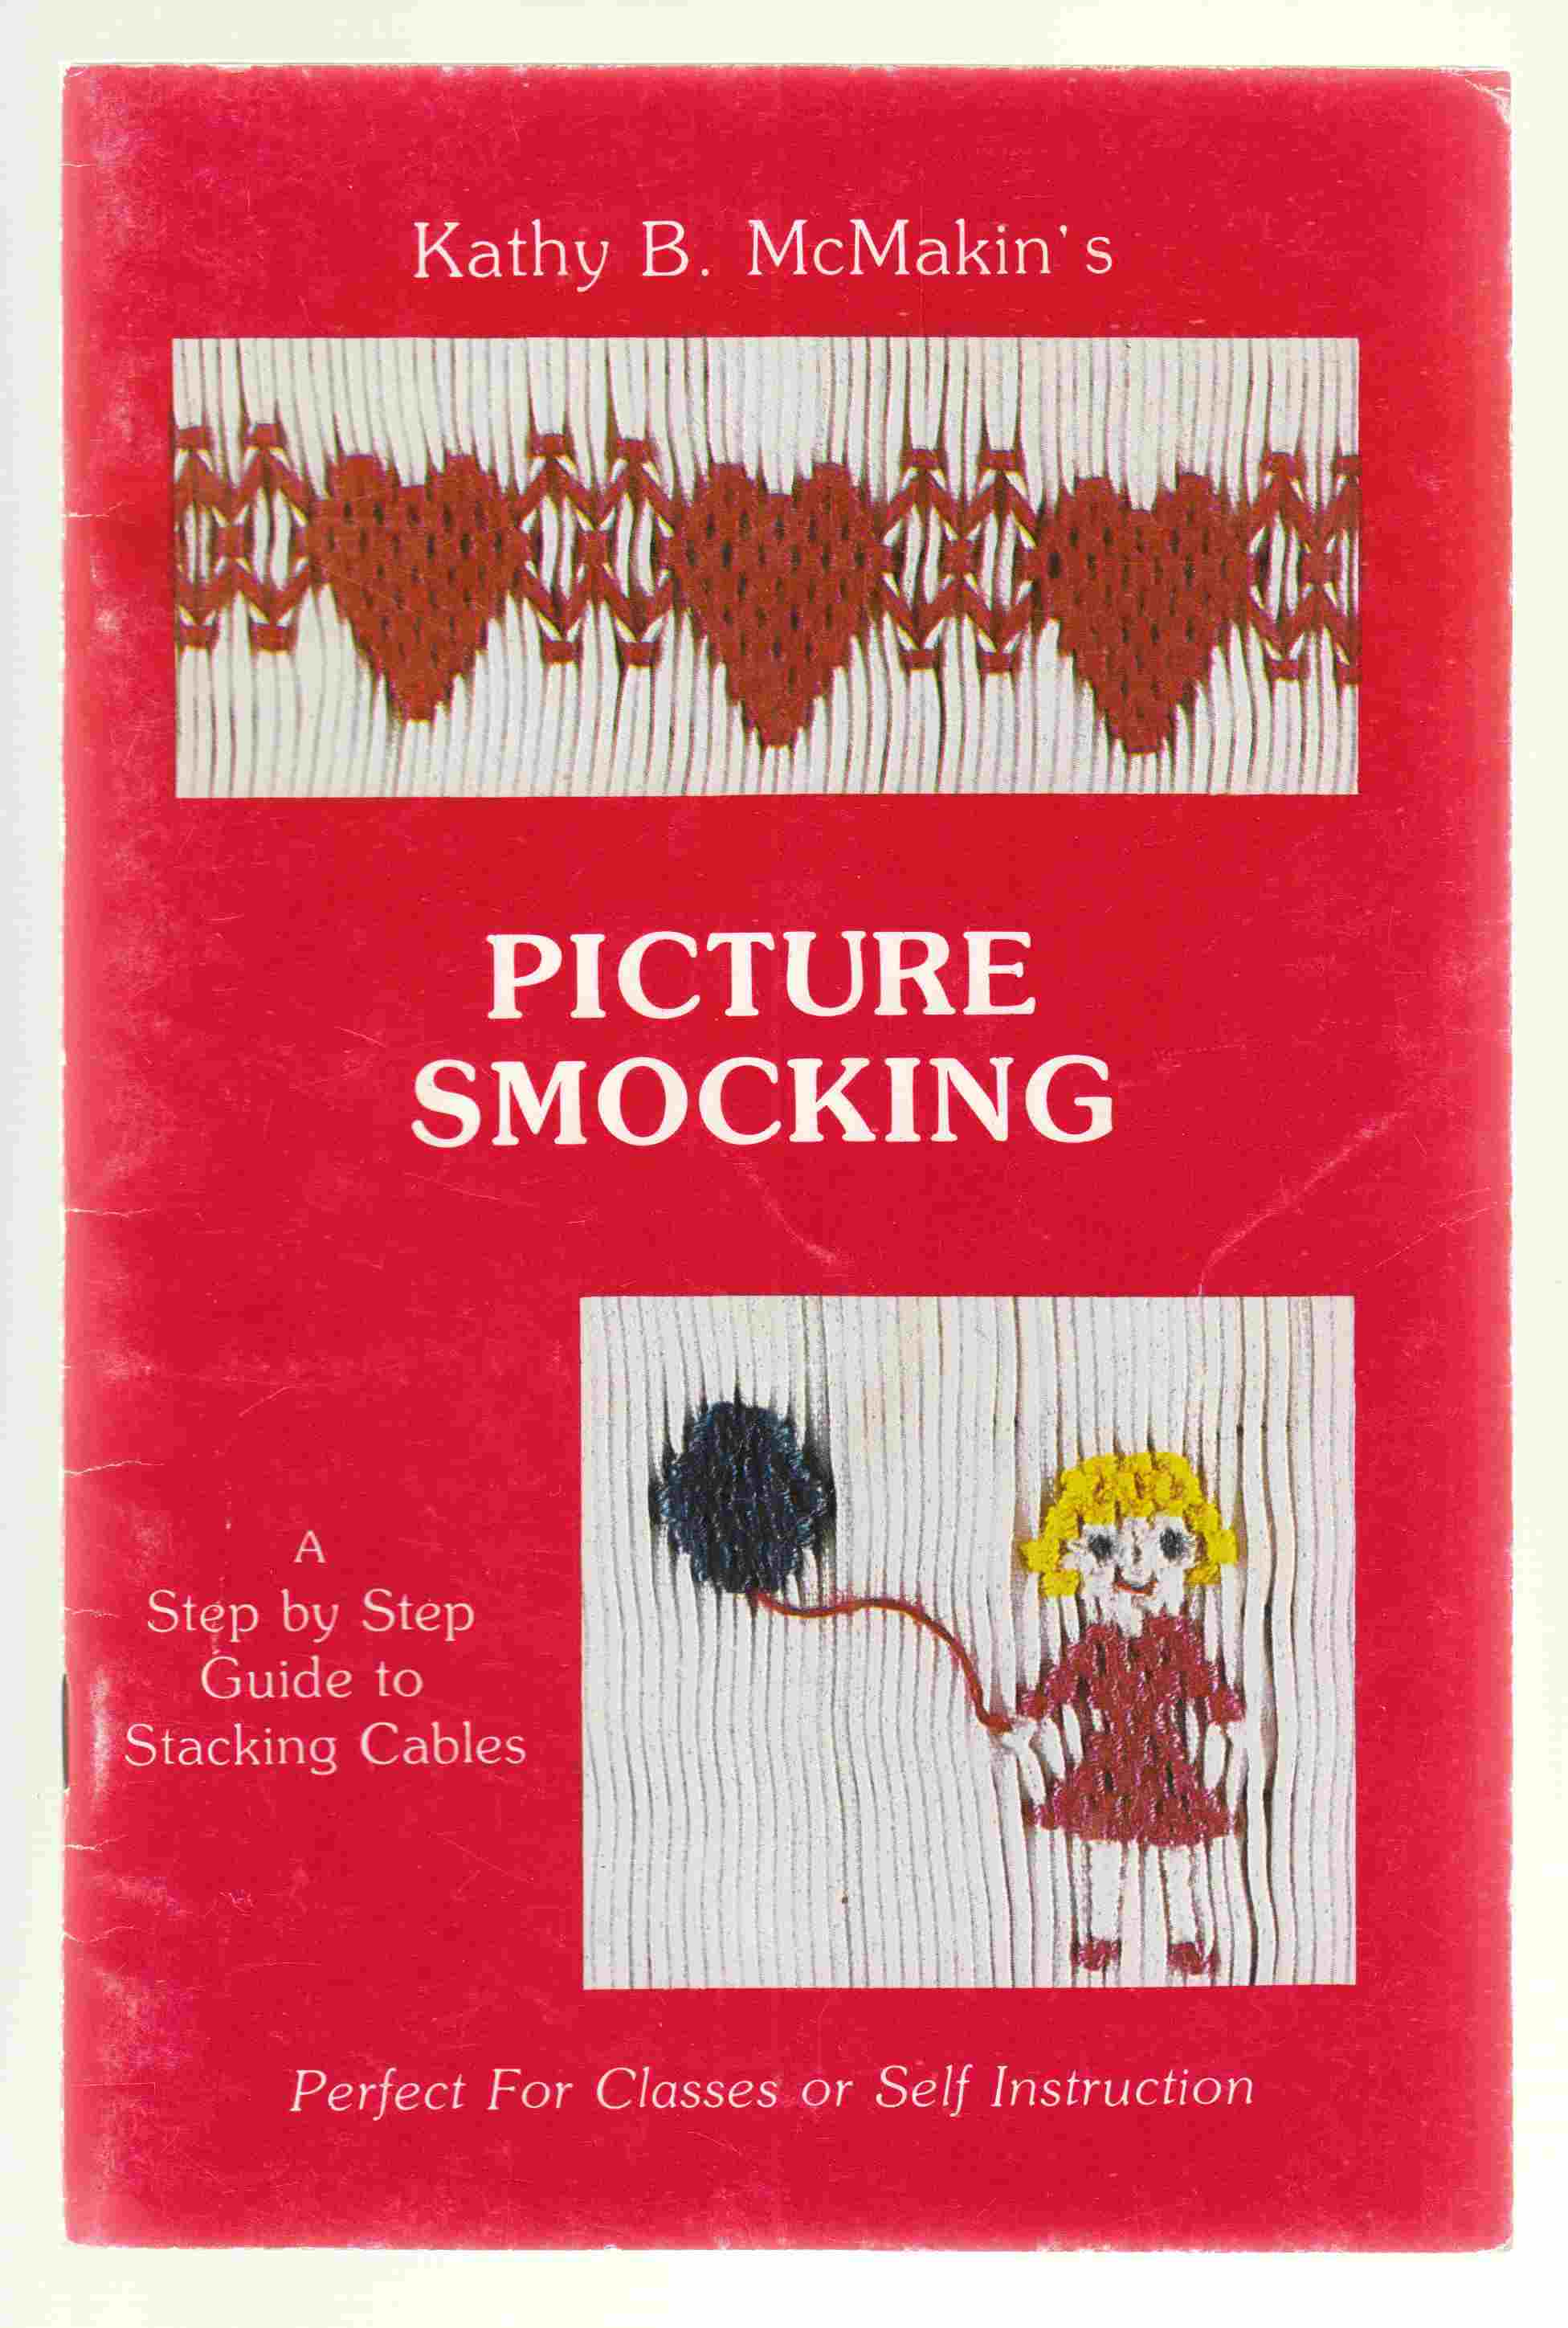 Image for Picture Smocking A Step by Step Guide to Stacking Cables